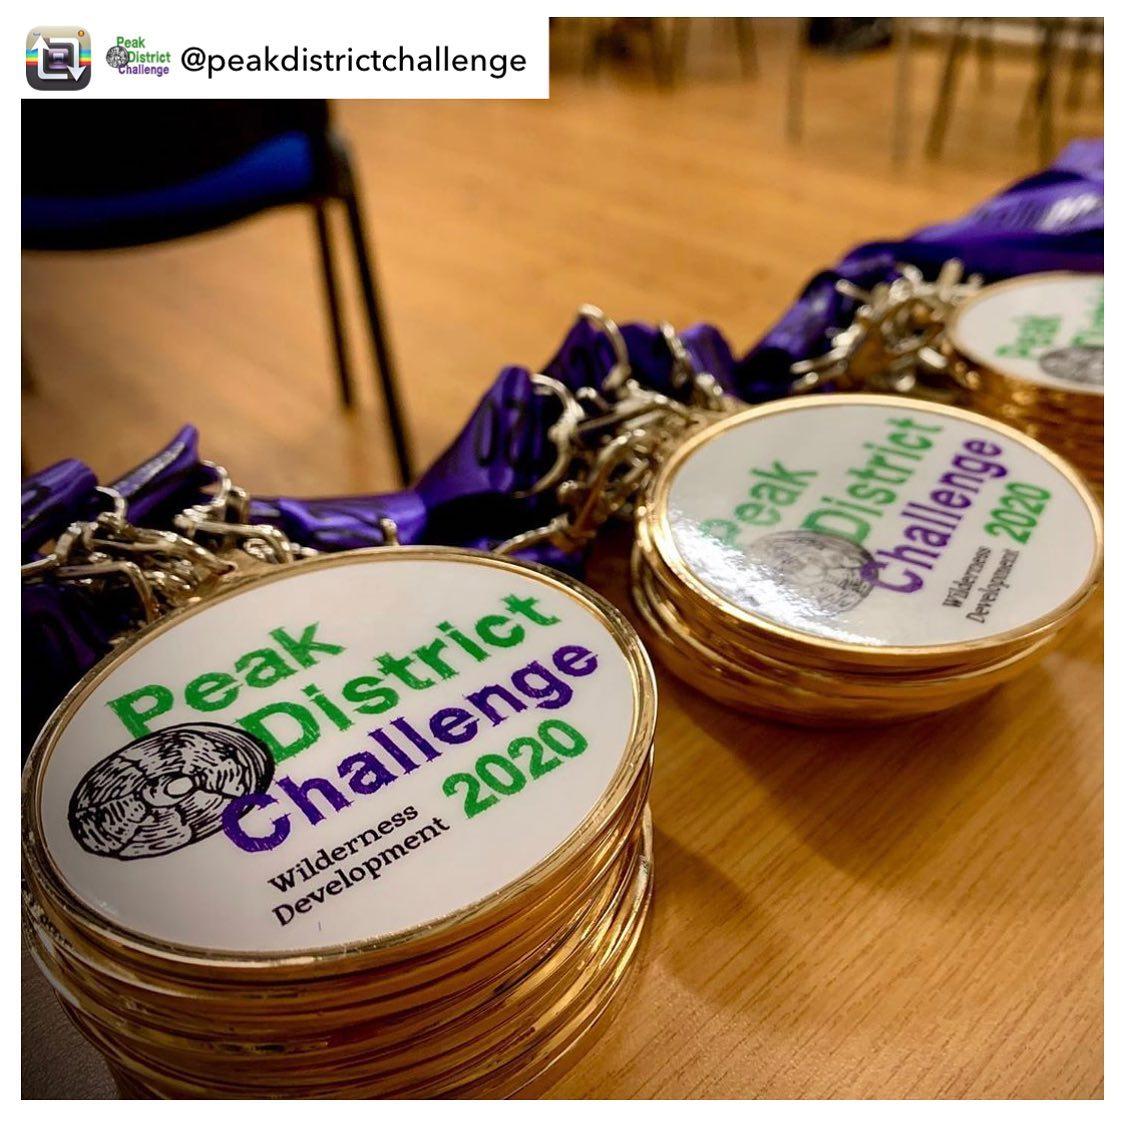 Repost from @peakdistrictchallenge - Our first wave of challengers have left and we're getting everyone's medals ready for tomorrow 🏅⛰🏅  . . . #wildernessdevelopment #peakdistrictchallenge #medals #ukhikes #hikebritain #peakdistrictchallenge2020 #originalpeakdistrictchallenge #since2013 #ultrarunning #ultratrailrunning #trailrunning #ultrarunners #challengeevent #challengeyourself #challengetrek #charityevent #peakdistrict #peakdistrictnationalpark #yourhikes #roamtheuk #hikingadventures #ukhikingofficial #hikinguk #mountainsfellsandhikes #mapmyhike #igersderbyshire #outdoorhikingculture #nationalparksuk